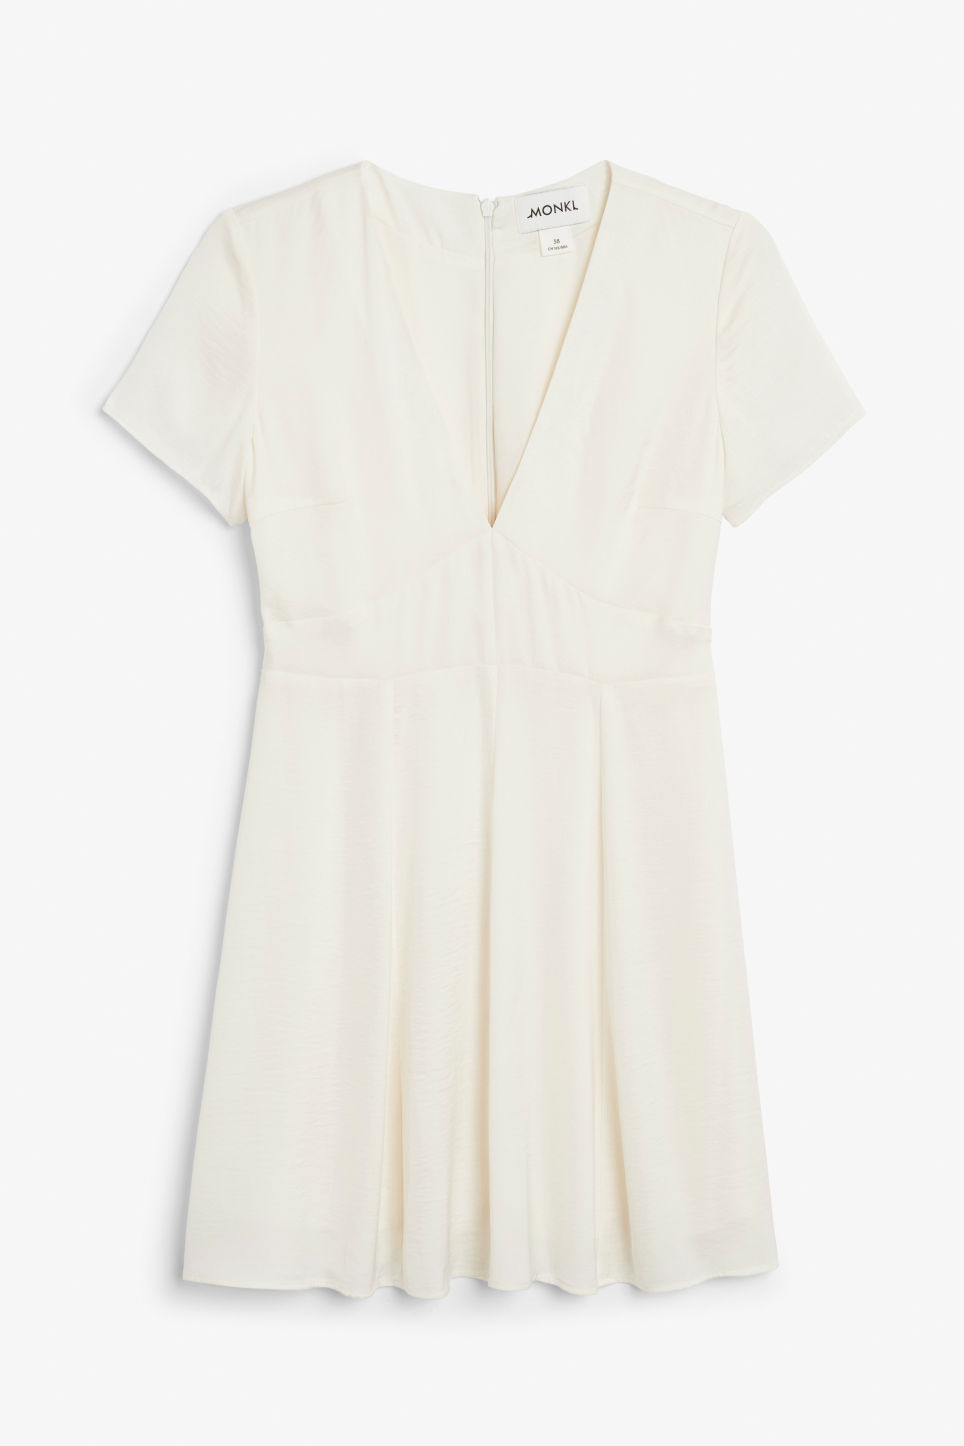 Front image of Monki silky v-neck party dress in white